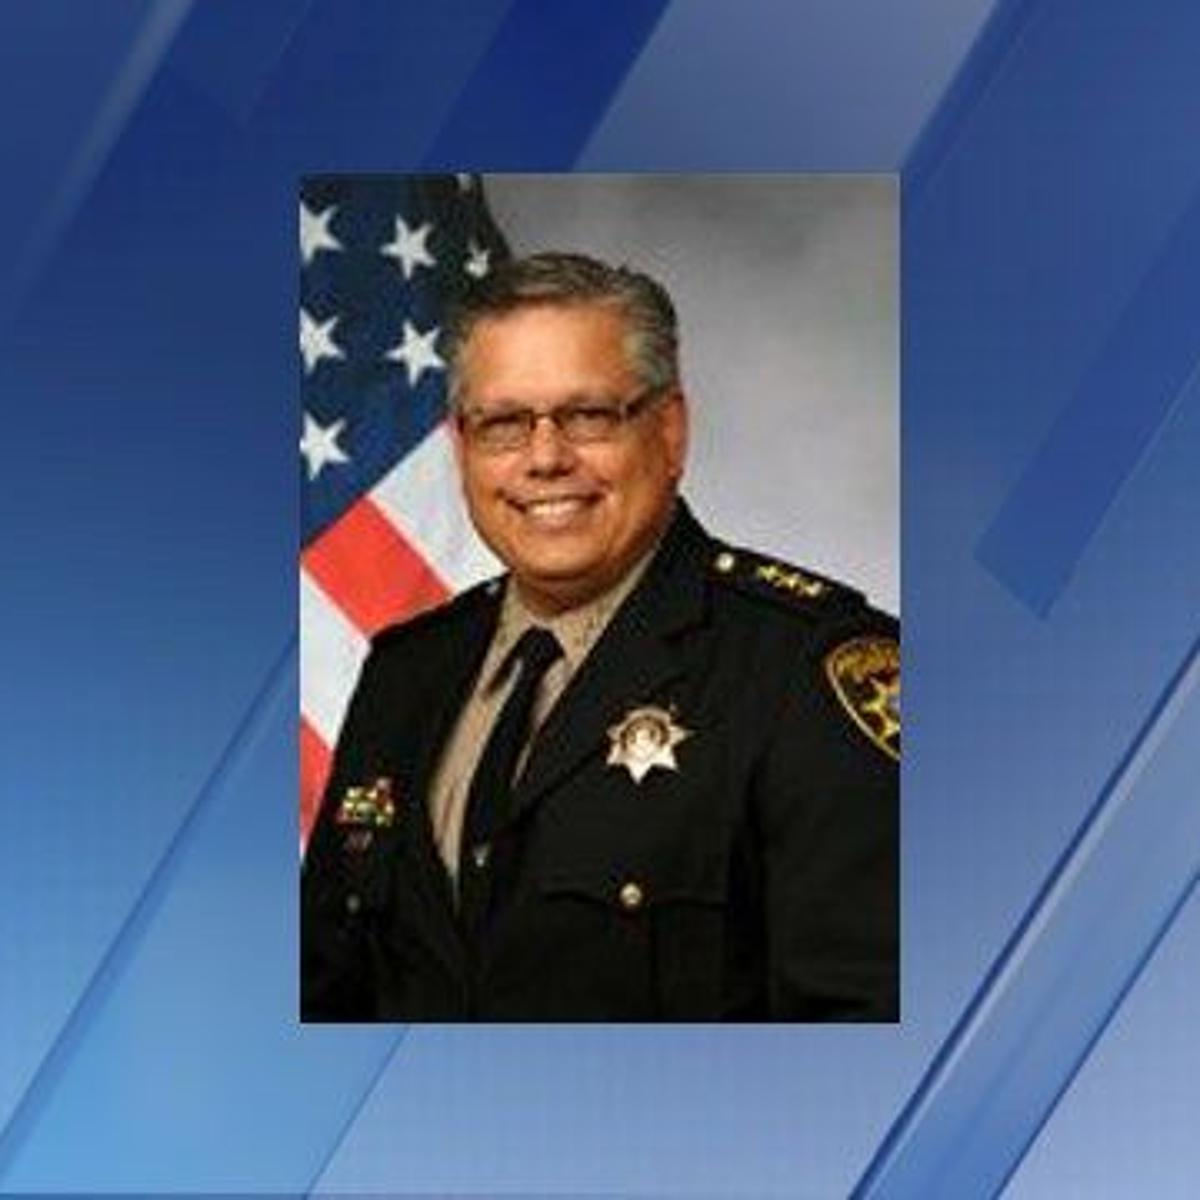 Pima County sheriff: Chief deputy indicted, resigns post